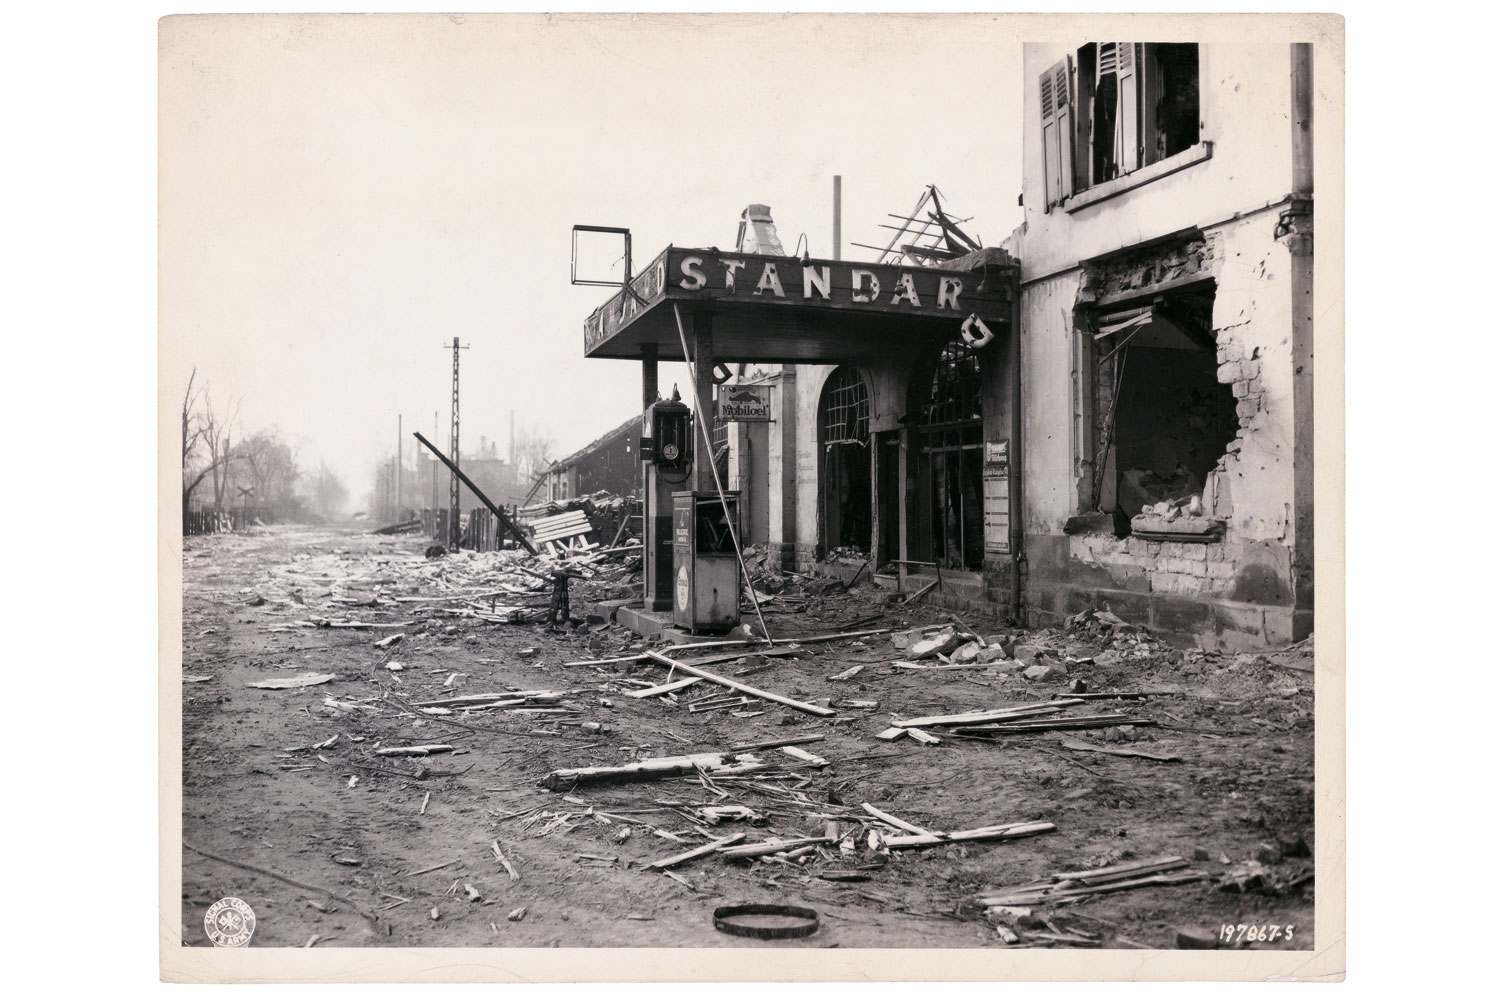 Destruction left in the wake of the battle for Fraulautern, Germany. Reminiscent of home is a Standard Oil gas station